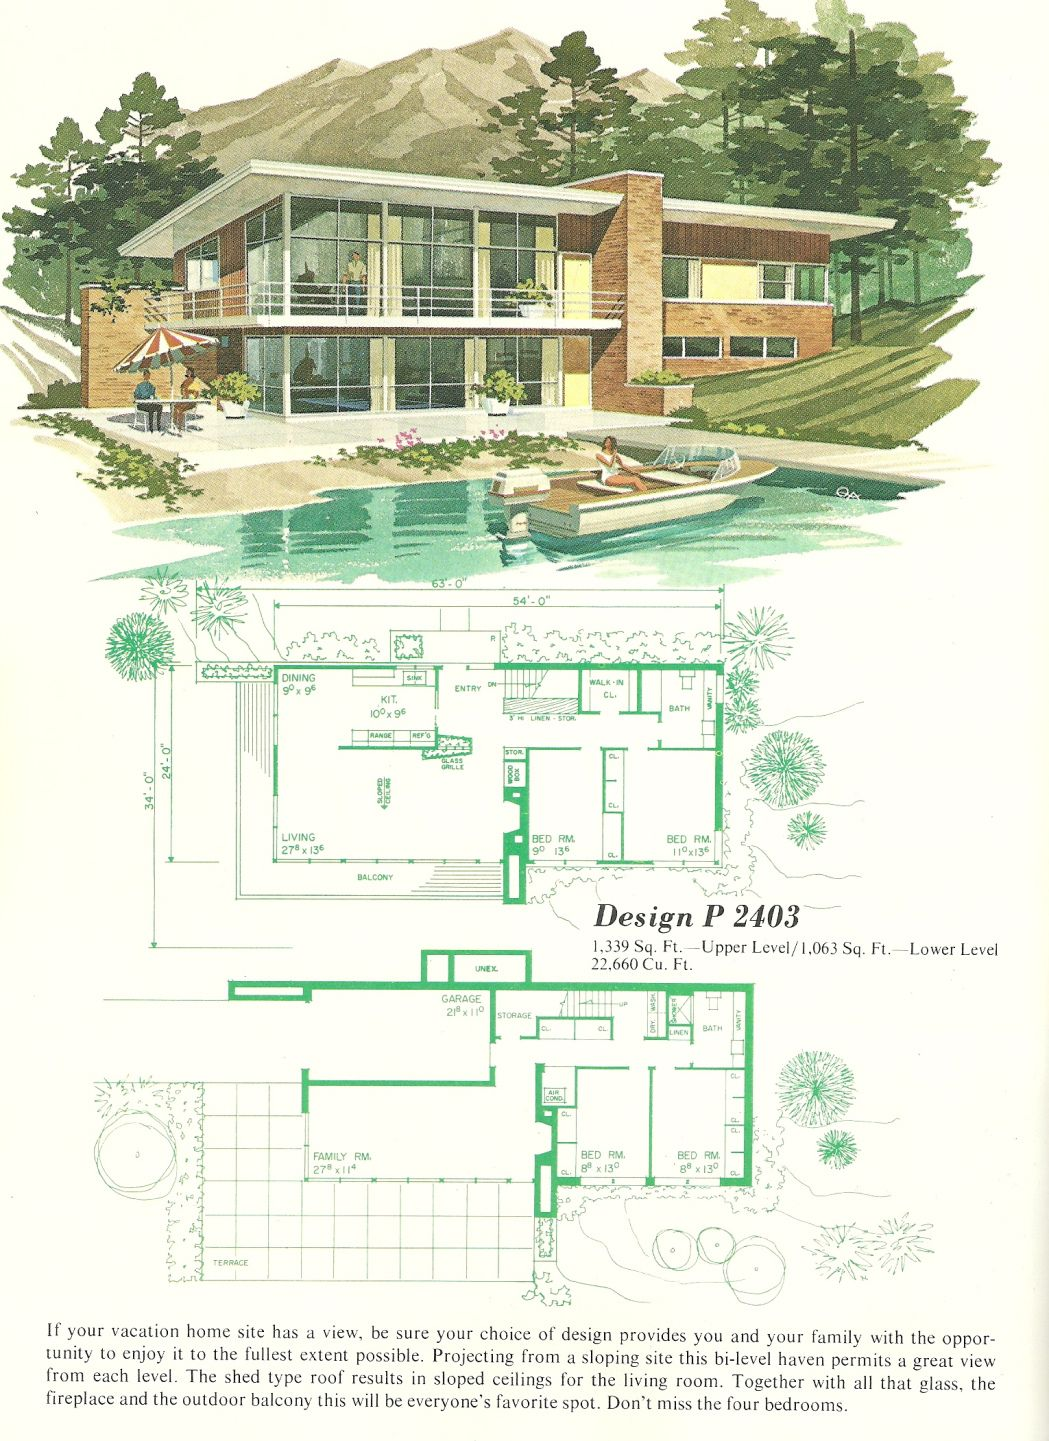 Vintage Vacation Homes 2403 Mid Century Modern House Plans Vintage House Plans Mid Century Modern House